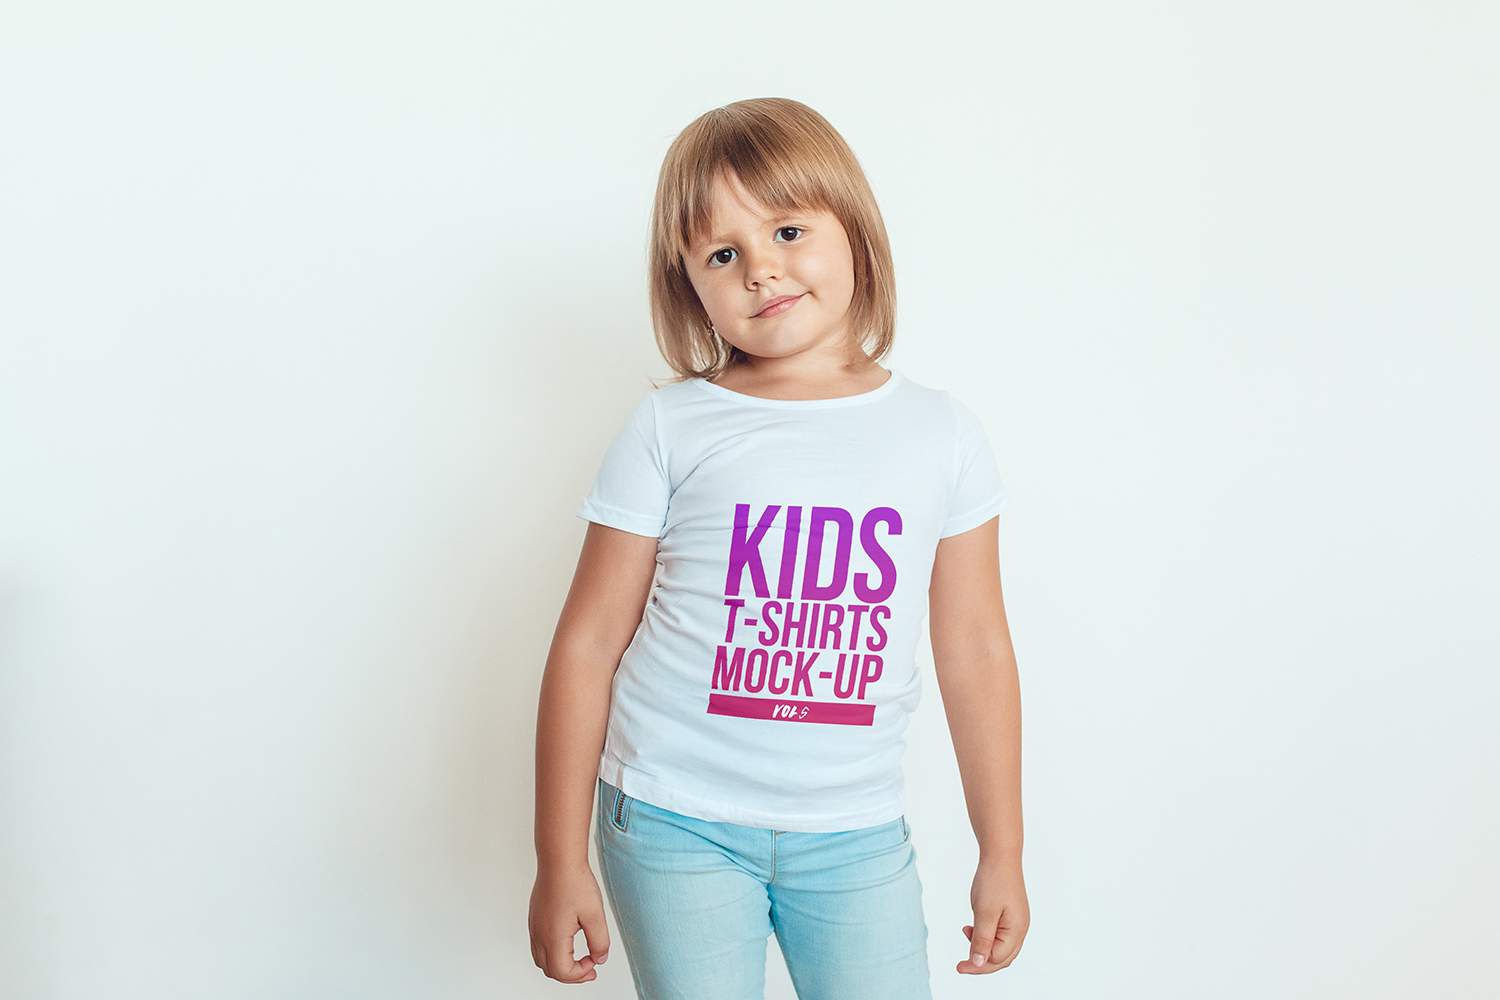 Kids T-Shirt Mock-Up Vol 5 example image 2